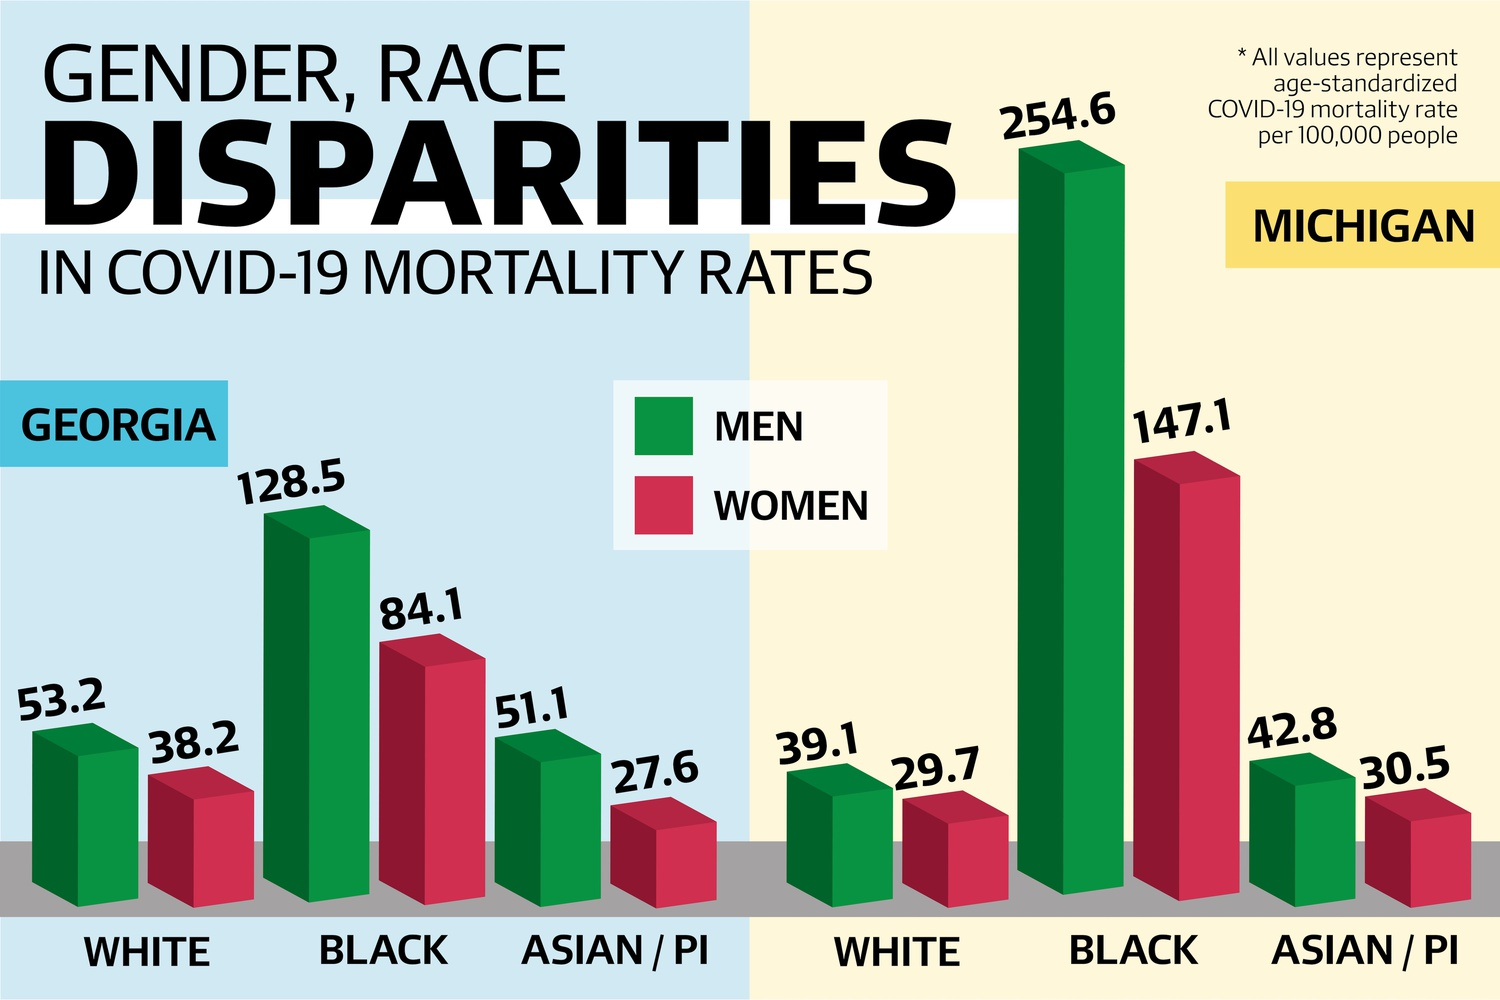 Researchers at Harvard's GenderSci Lab investigated the intersectionality of race, sex, and Covid-19 mortalities in a study published earlier this month.